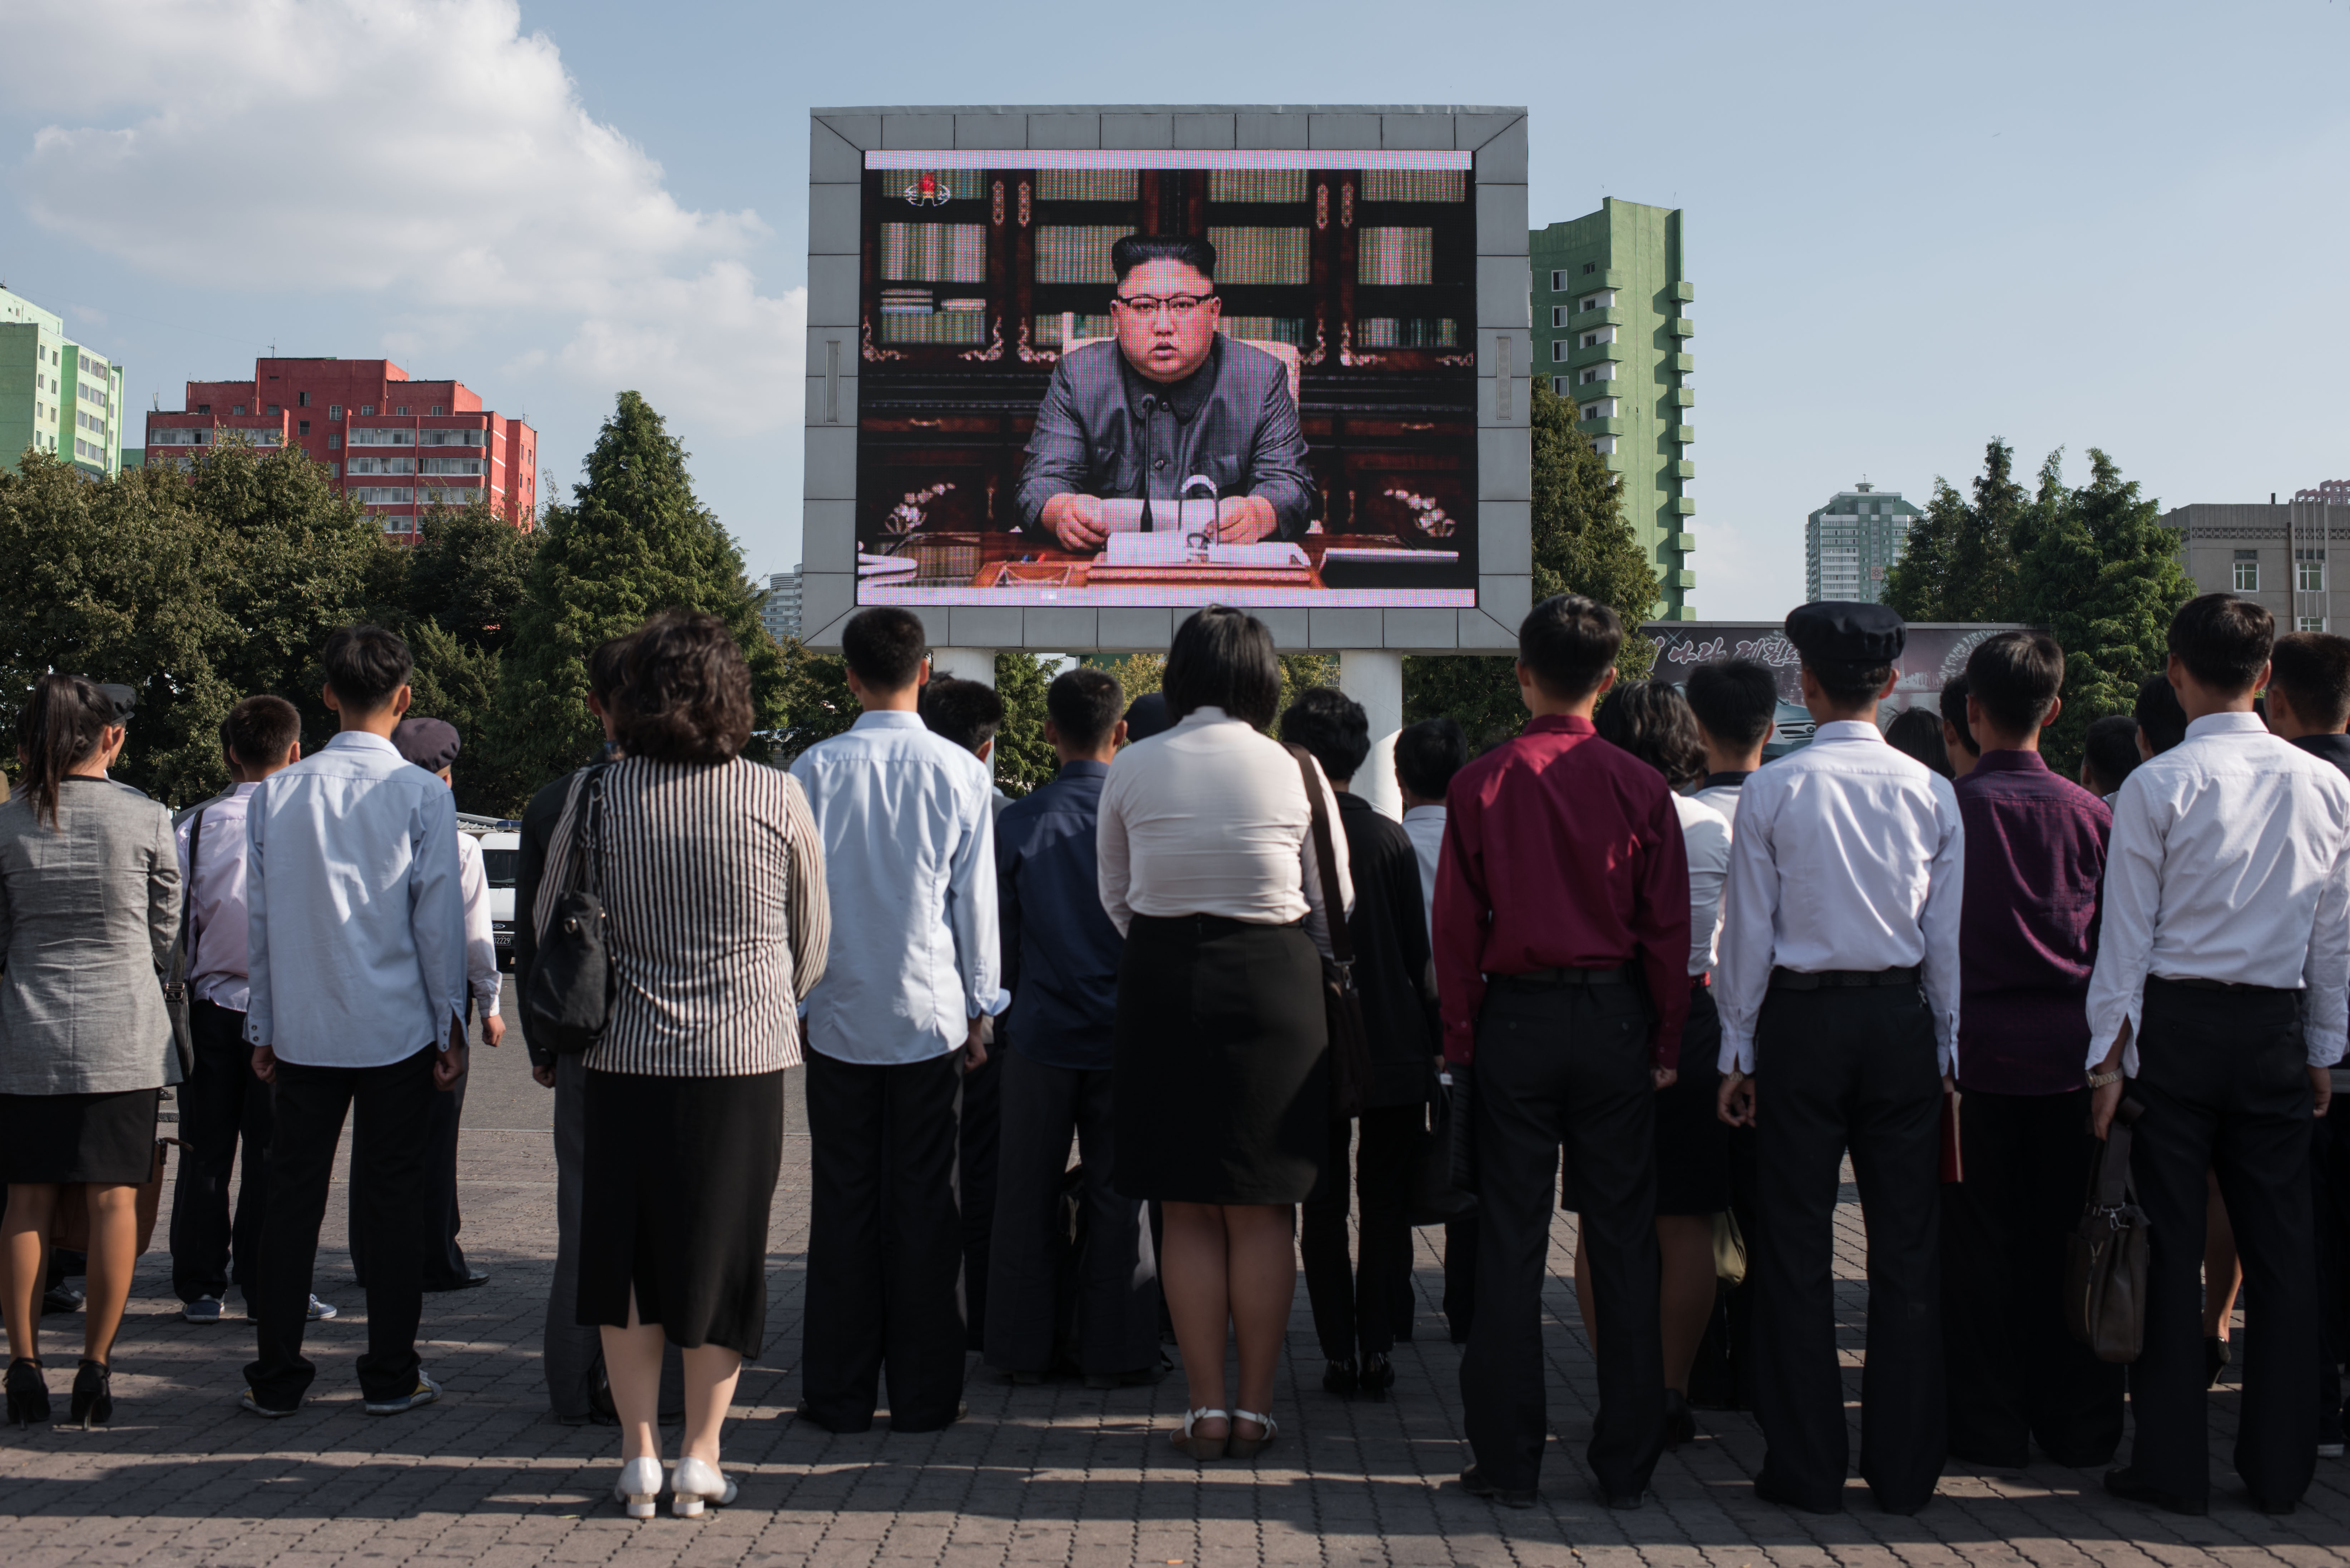 """North Korean leader Kim Jong-un warned U.S. President Donald Trump that he would """"pay dearly"""" for his threat to destroy North Korea in a televised statement in Pyongyang on September 22, 2017."""